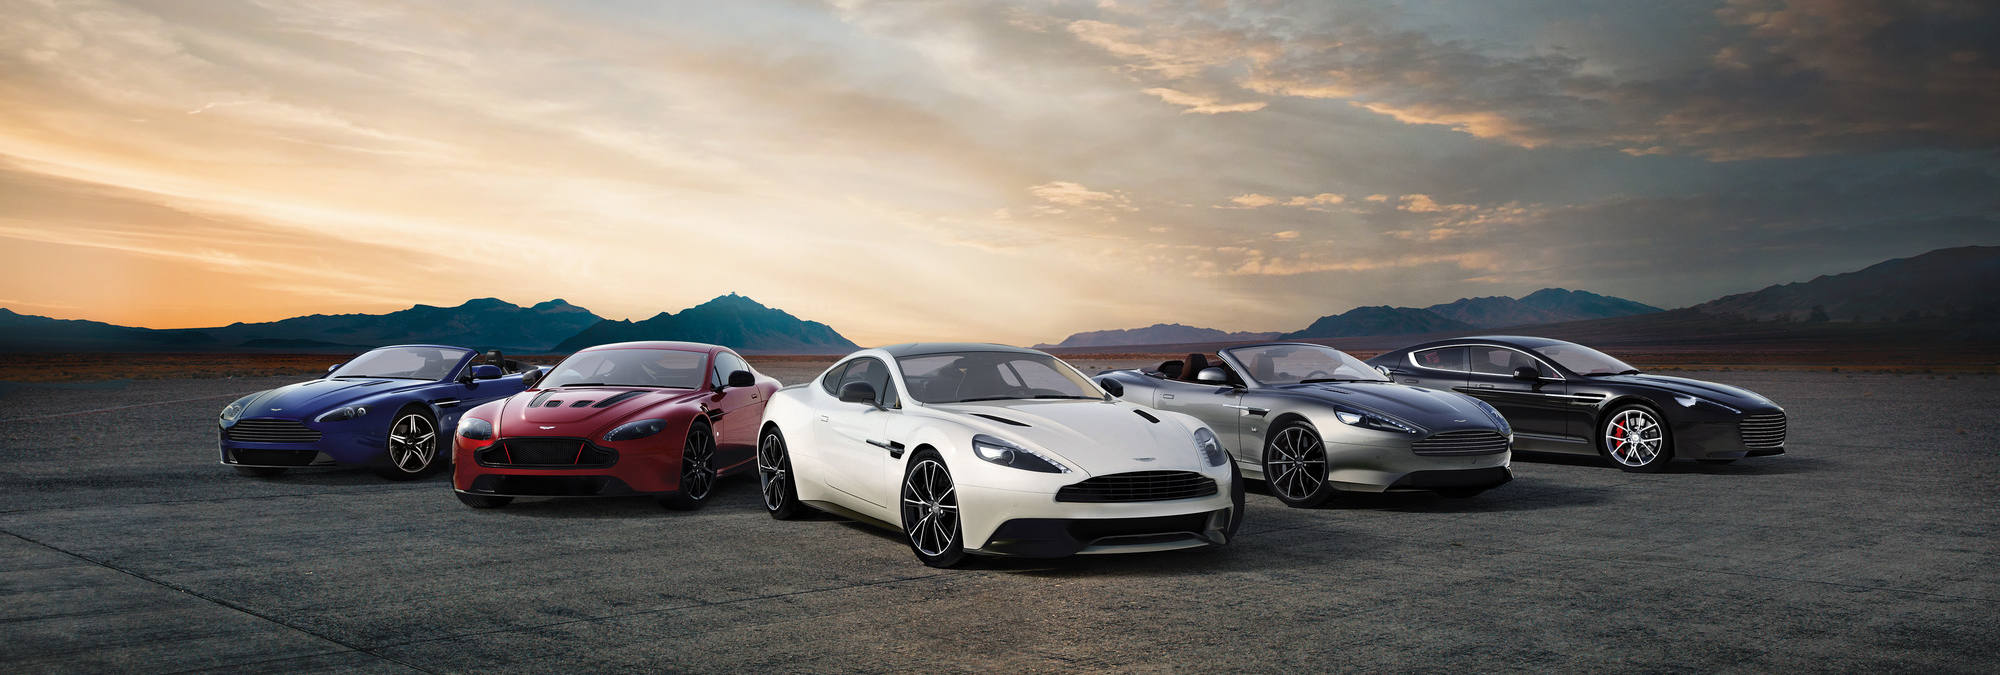 Aston Martin Models Luxury Sports Cars Napletons Aston Martin - Aston martin sports car